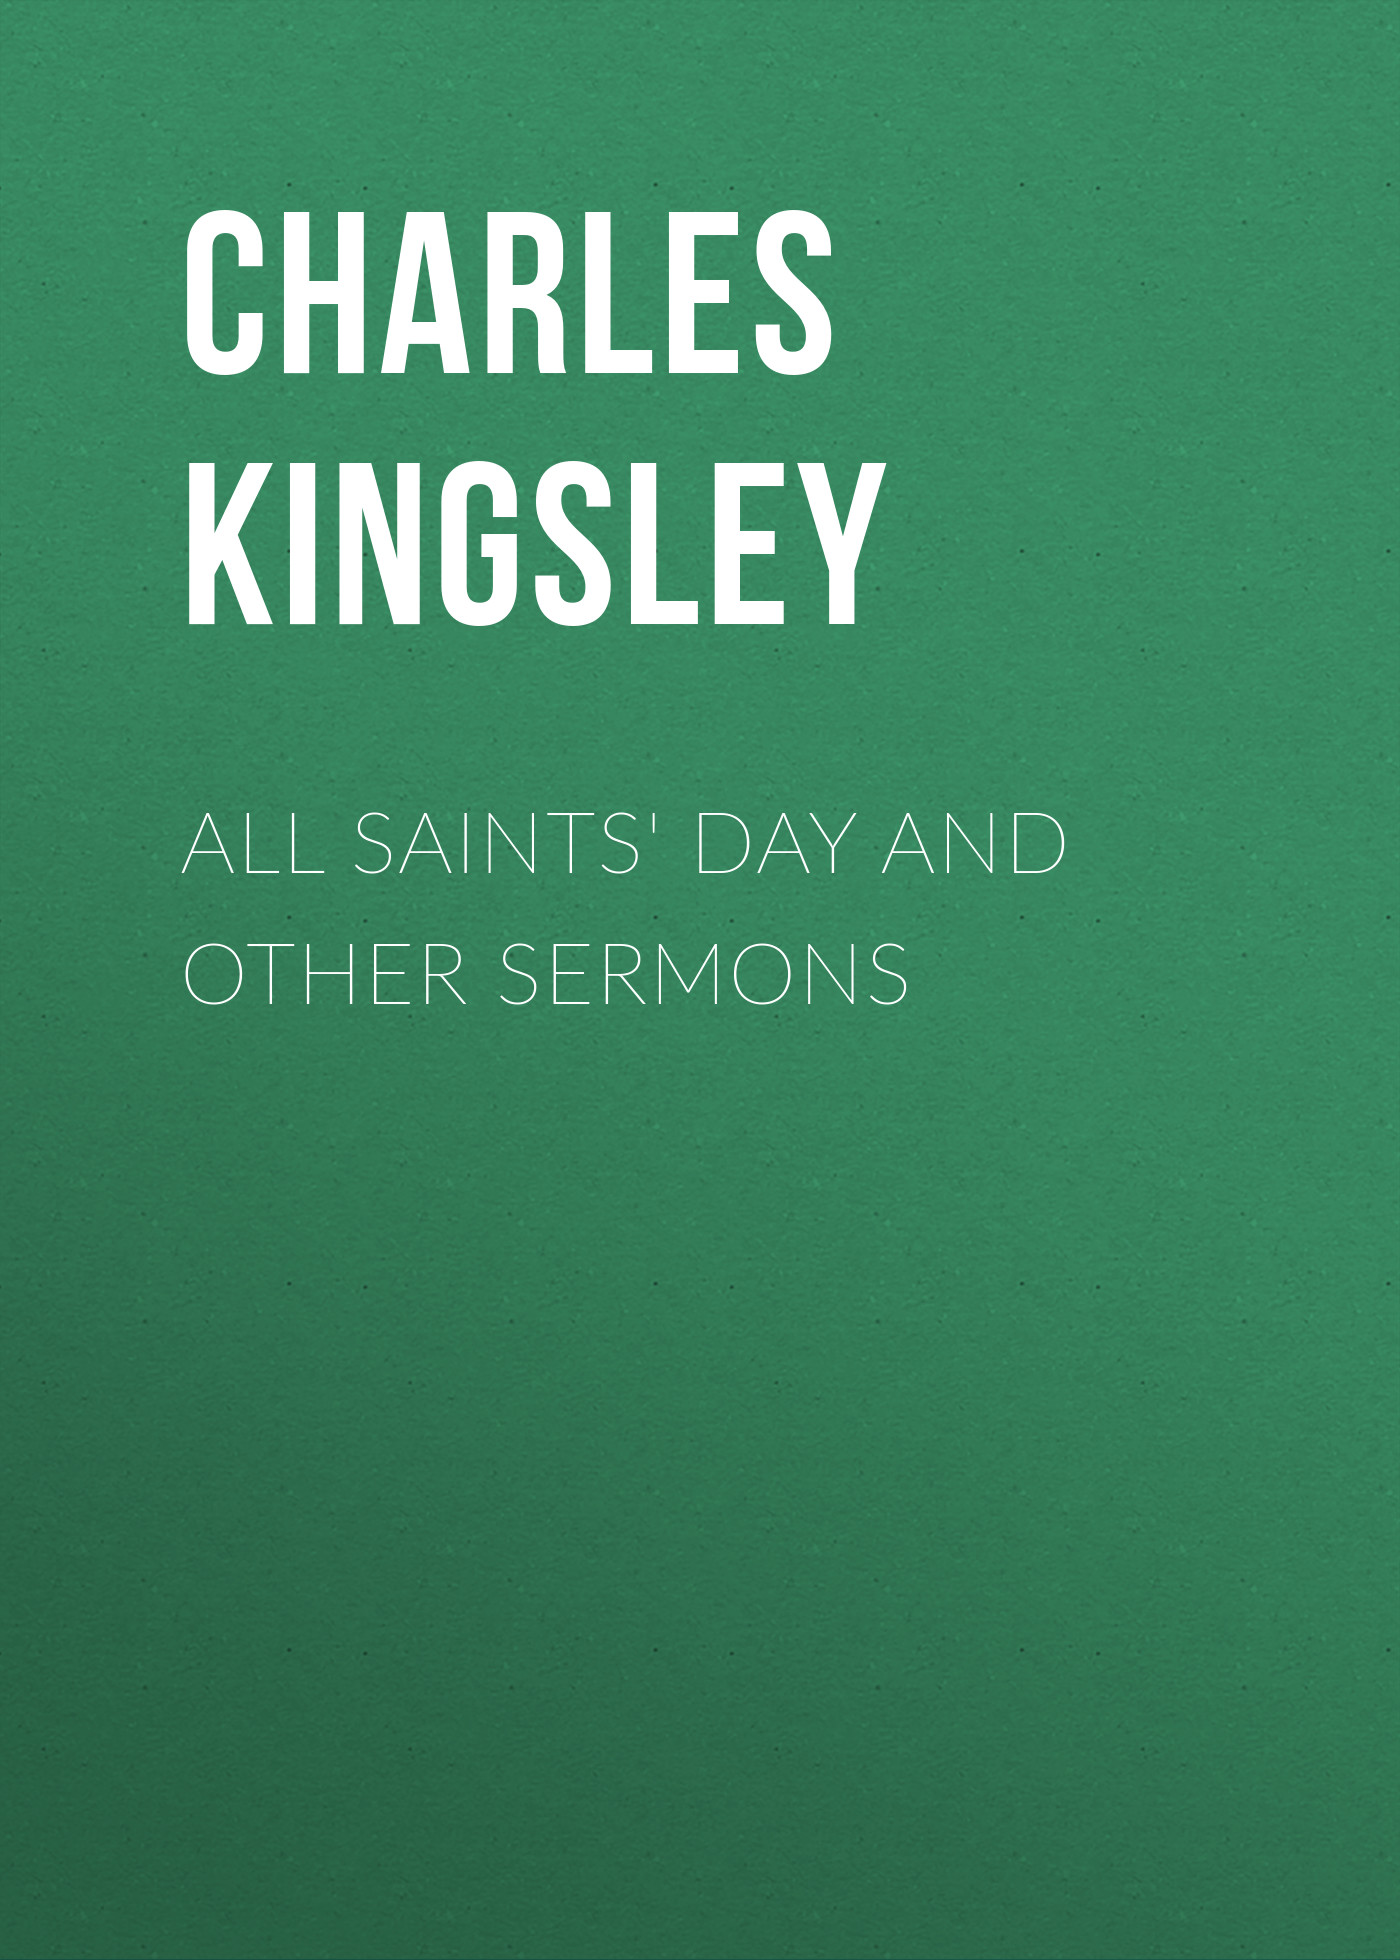 Charles Kingsley All Saints' Day and Other Sermons